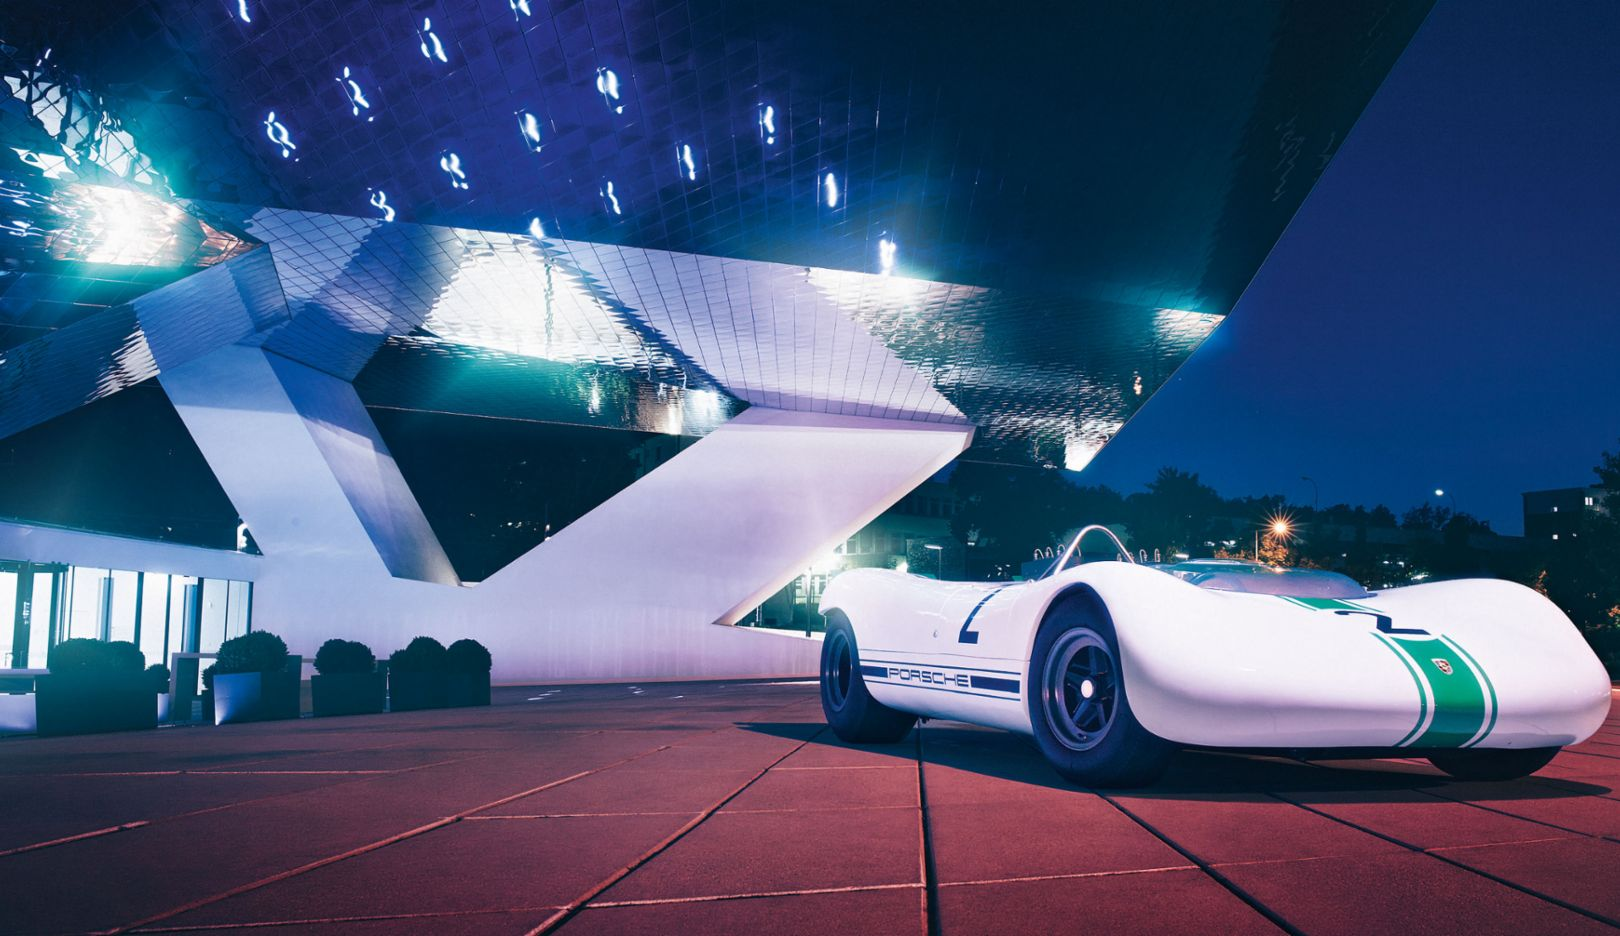 A pioneer of lightweight design: he Porsche 909 Bergspyder outside the Porsche museum